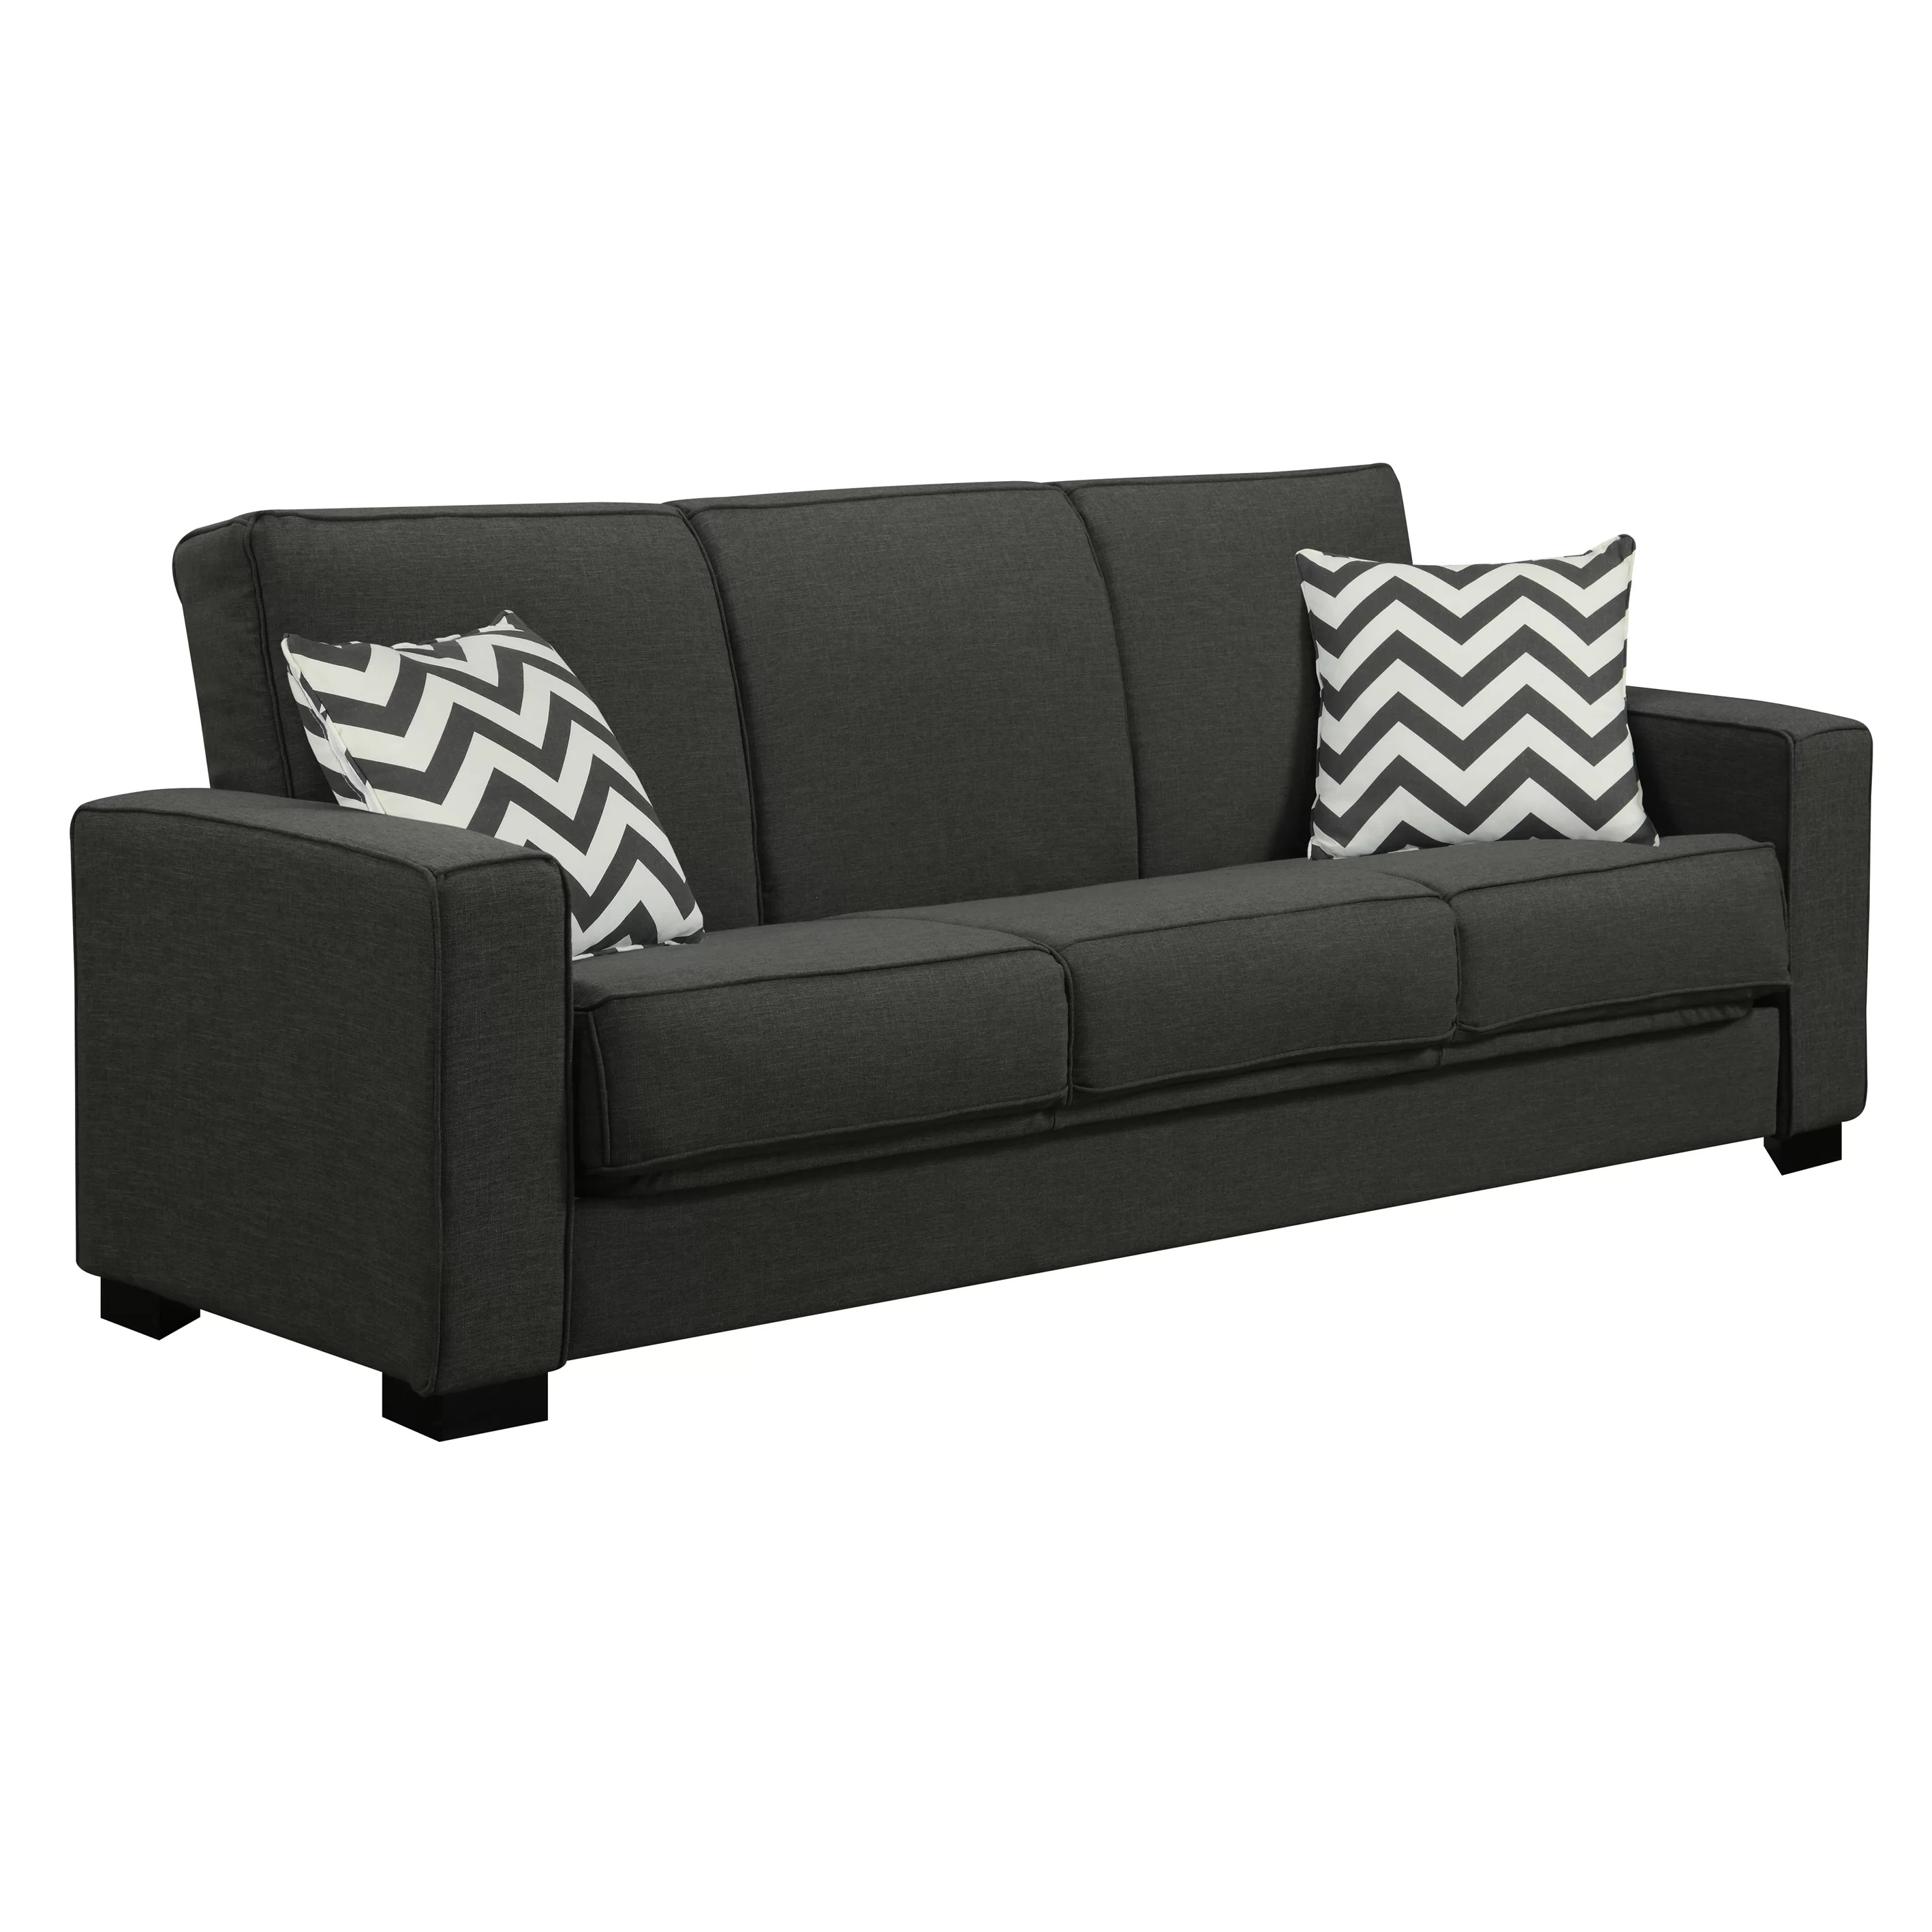 Convertible Chair Sleeper Athena Convertible Sleeper Sofa Wayfair